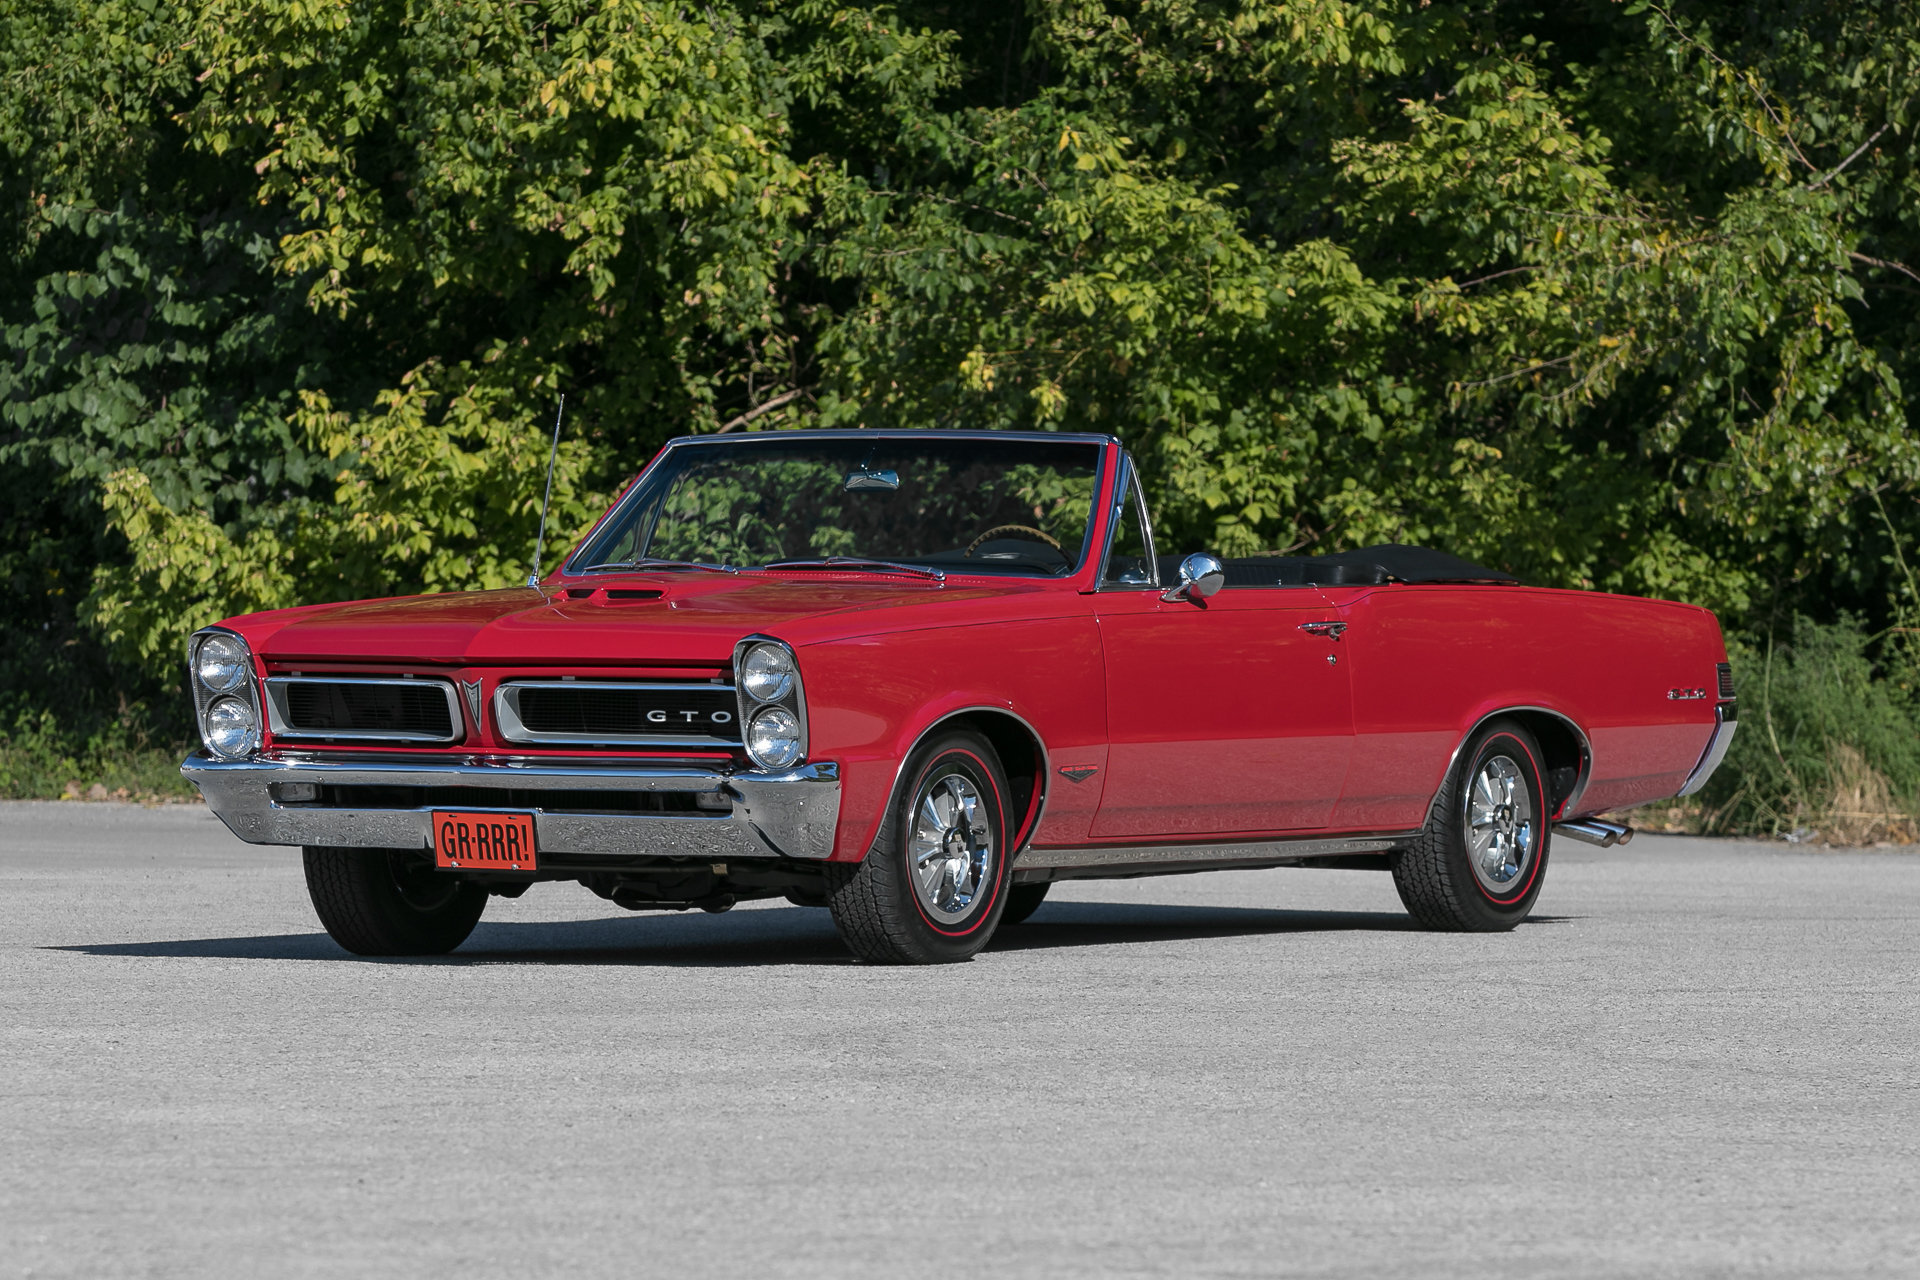 1965 Pontiac Gto For Sale 104142 Mcg Phs Documented 4 Speed Tri Power 389 Red Black